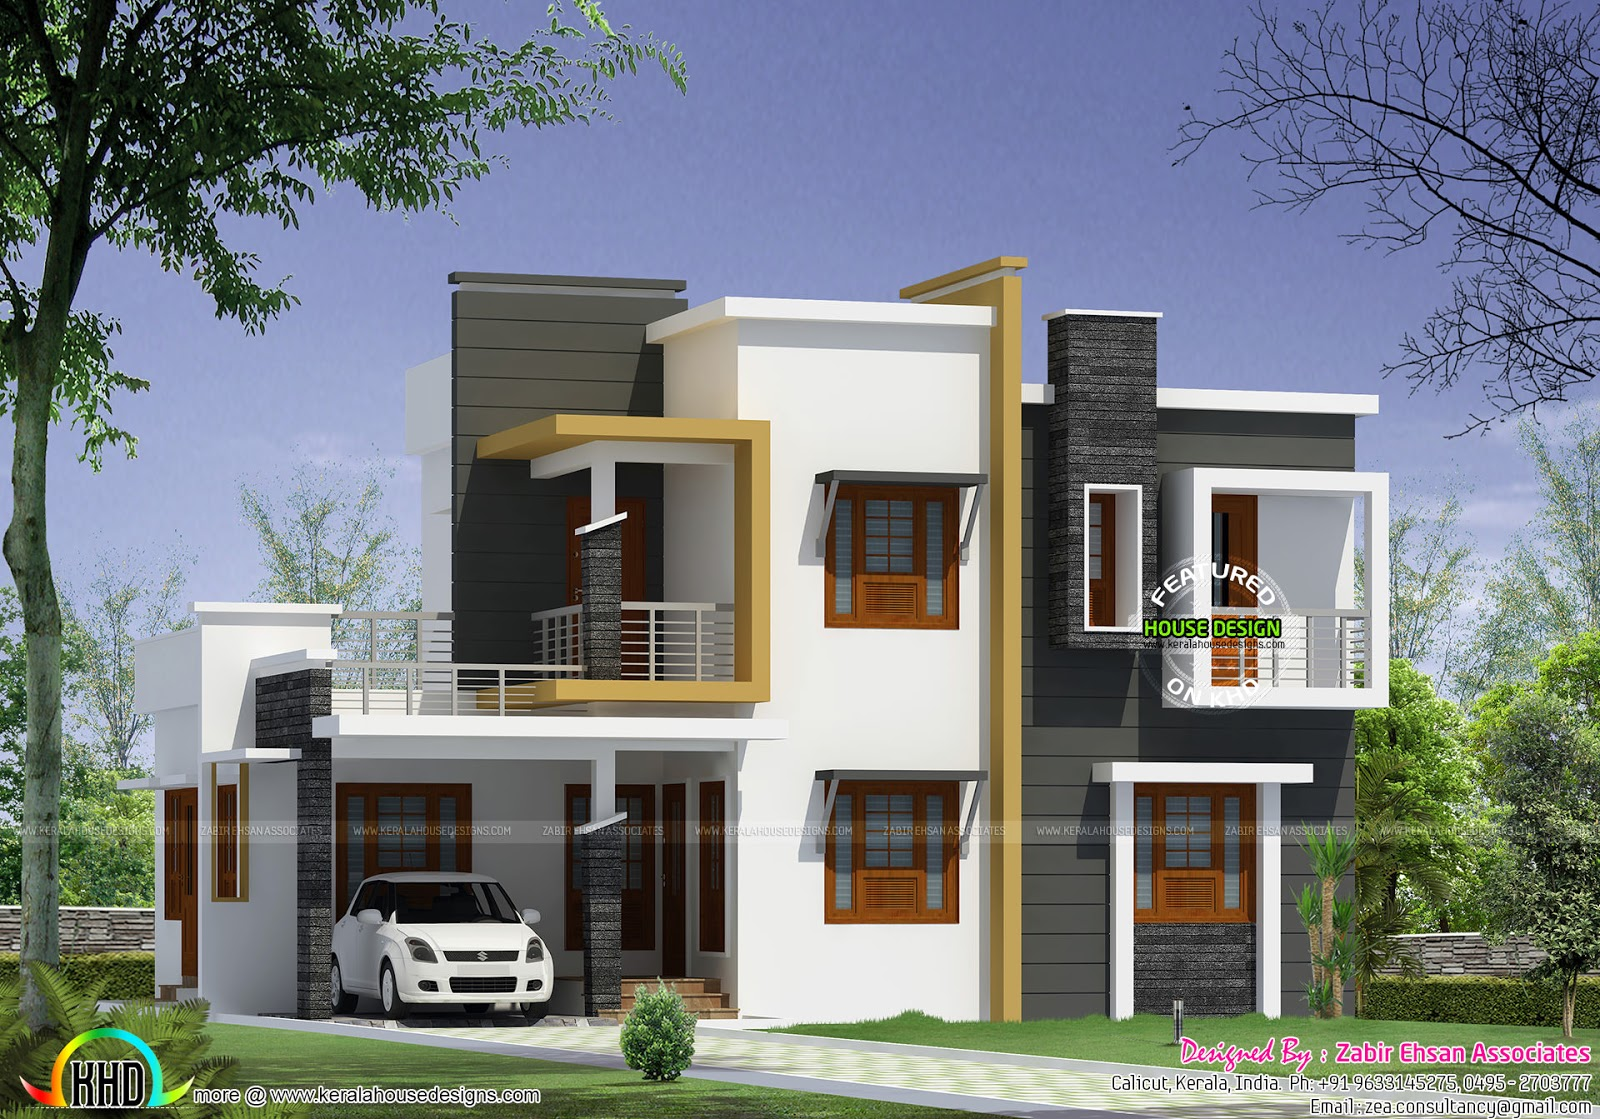 Box type modern house plan kerala home design and floor for Home blueprints online